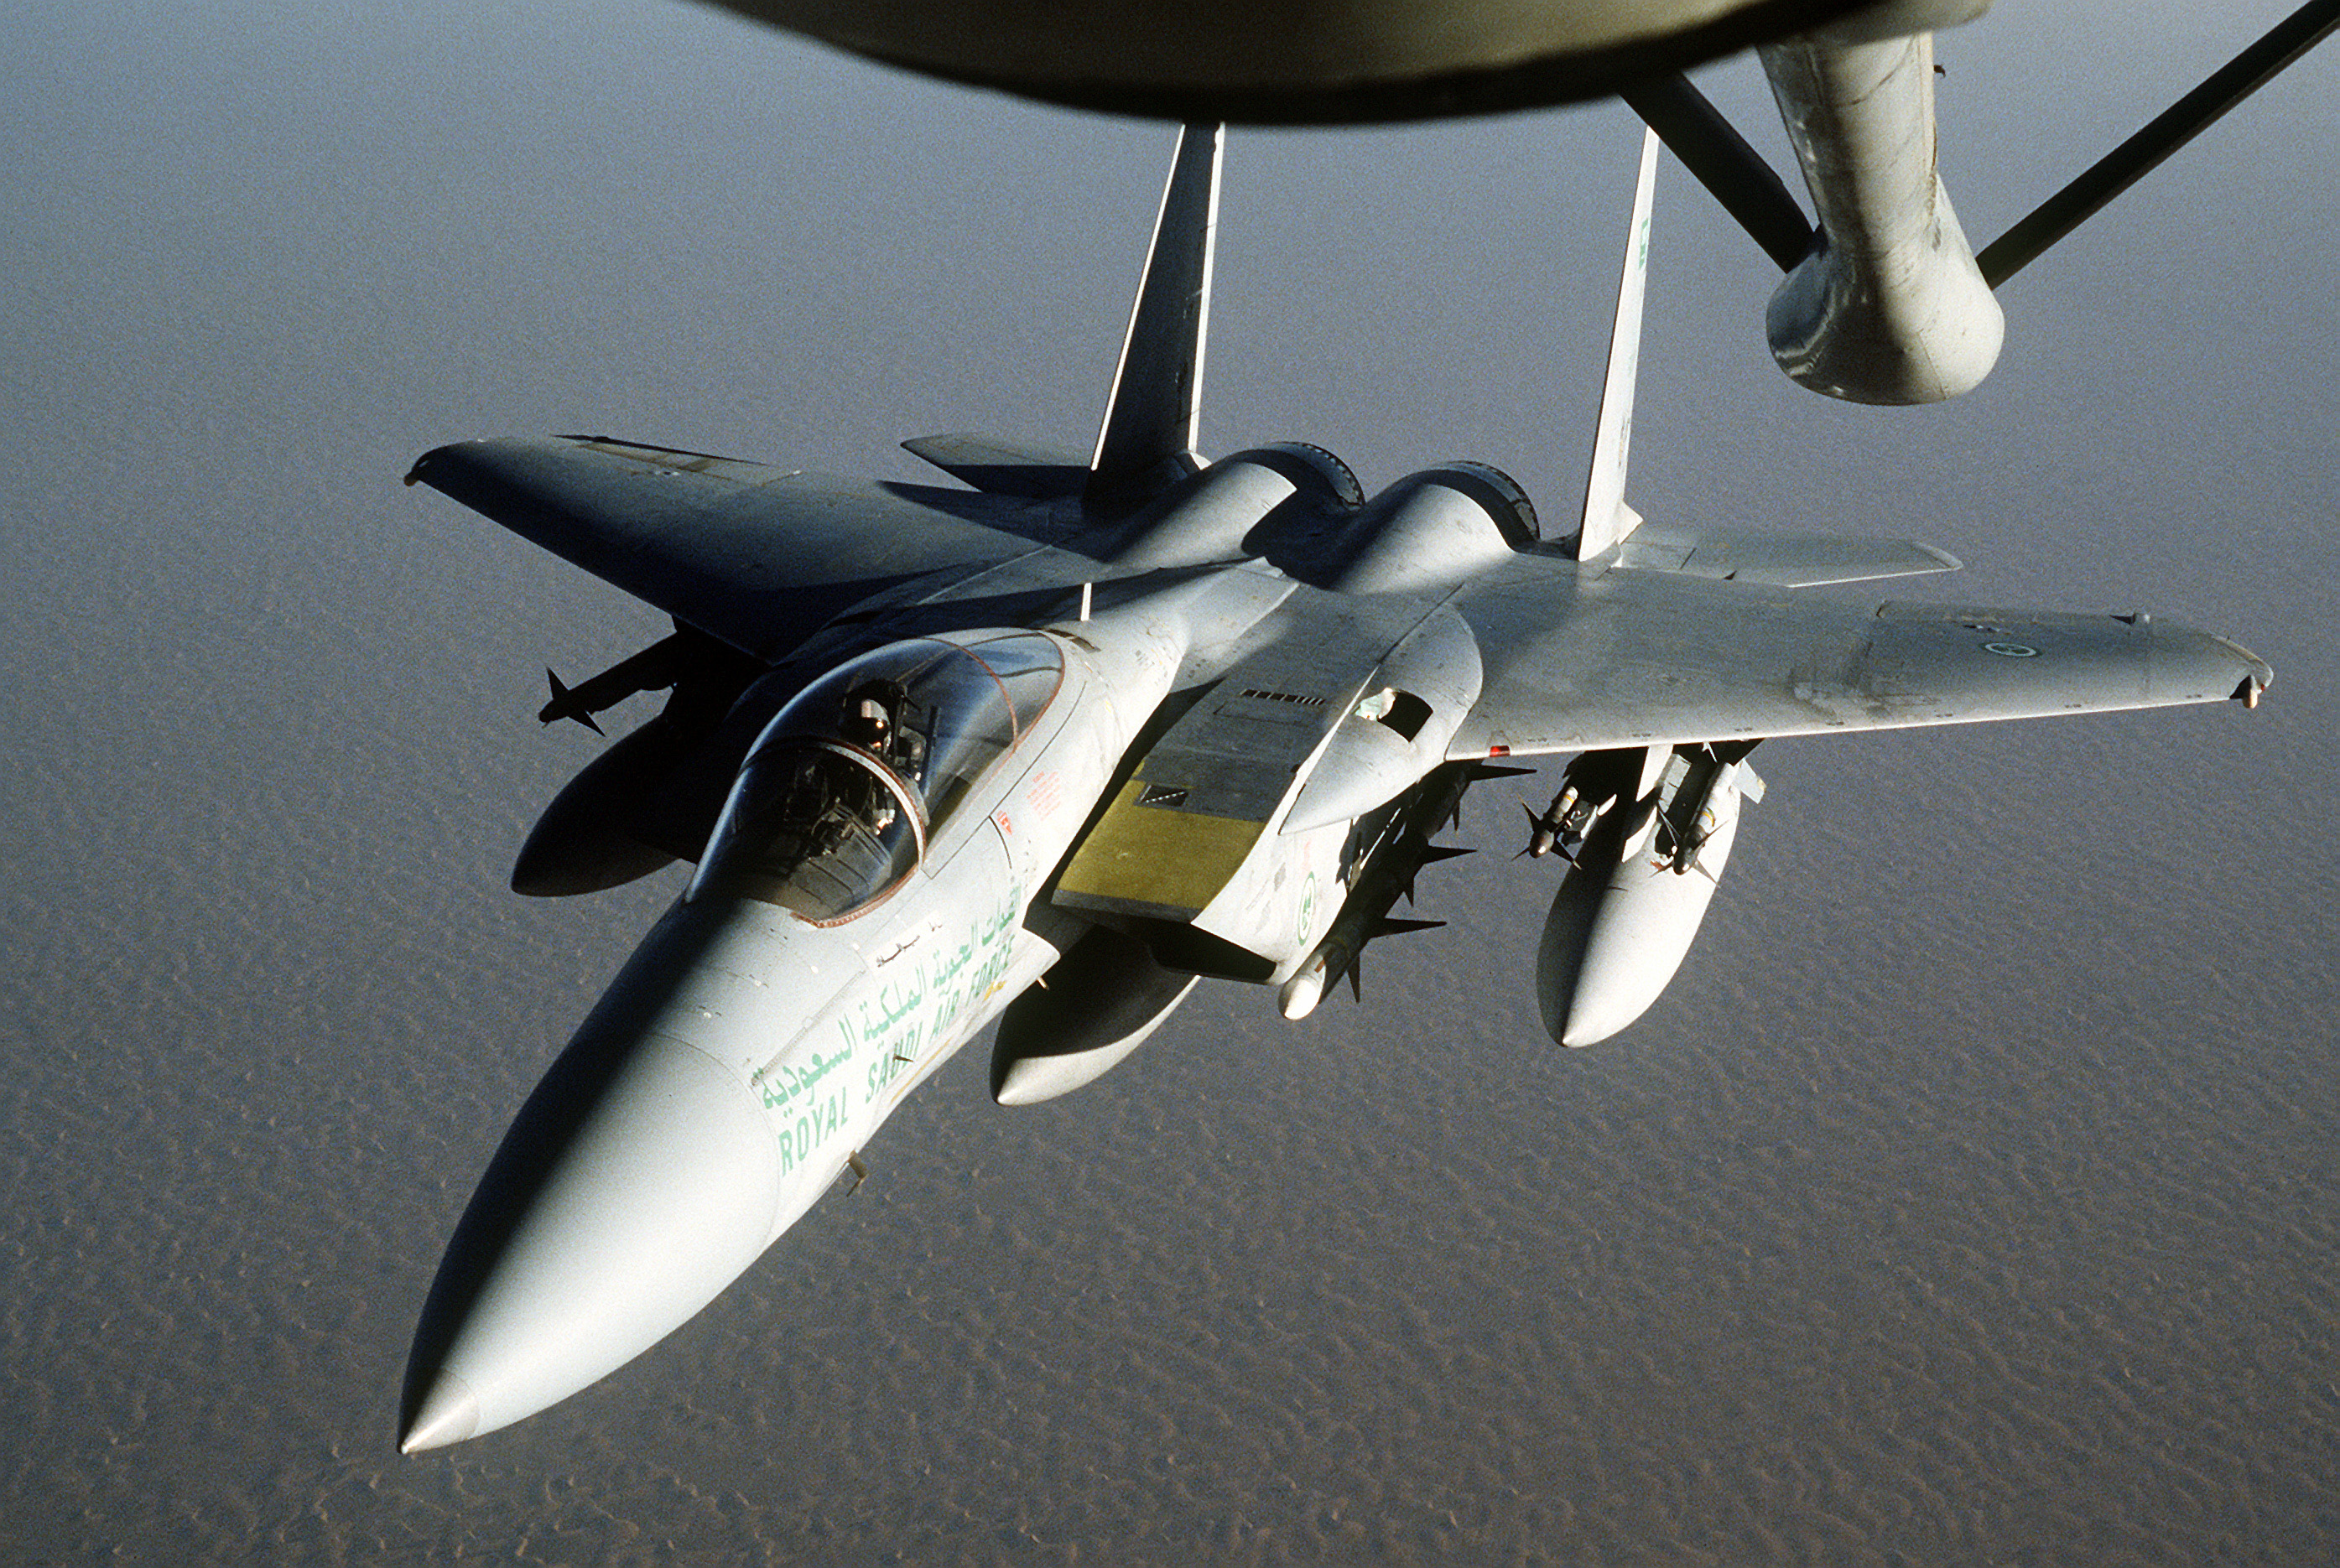 A Royal Saudi Air Force F-15 Eagle approaches a KC-135 Stratotanker for aerial refueling during Operation Desert Shield.